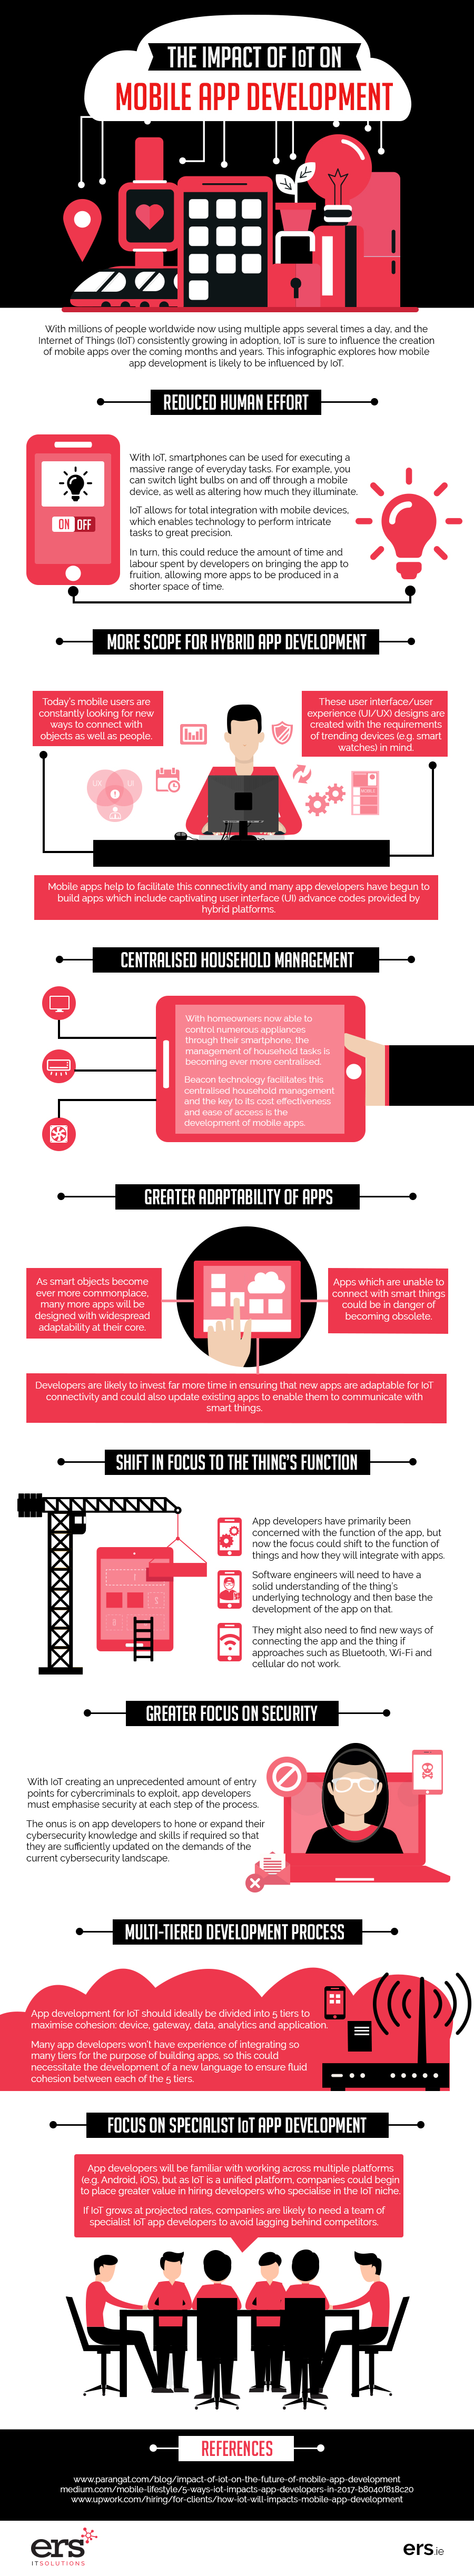 the-impact-of-IoT-on-mobile-app-development-Infographic